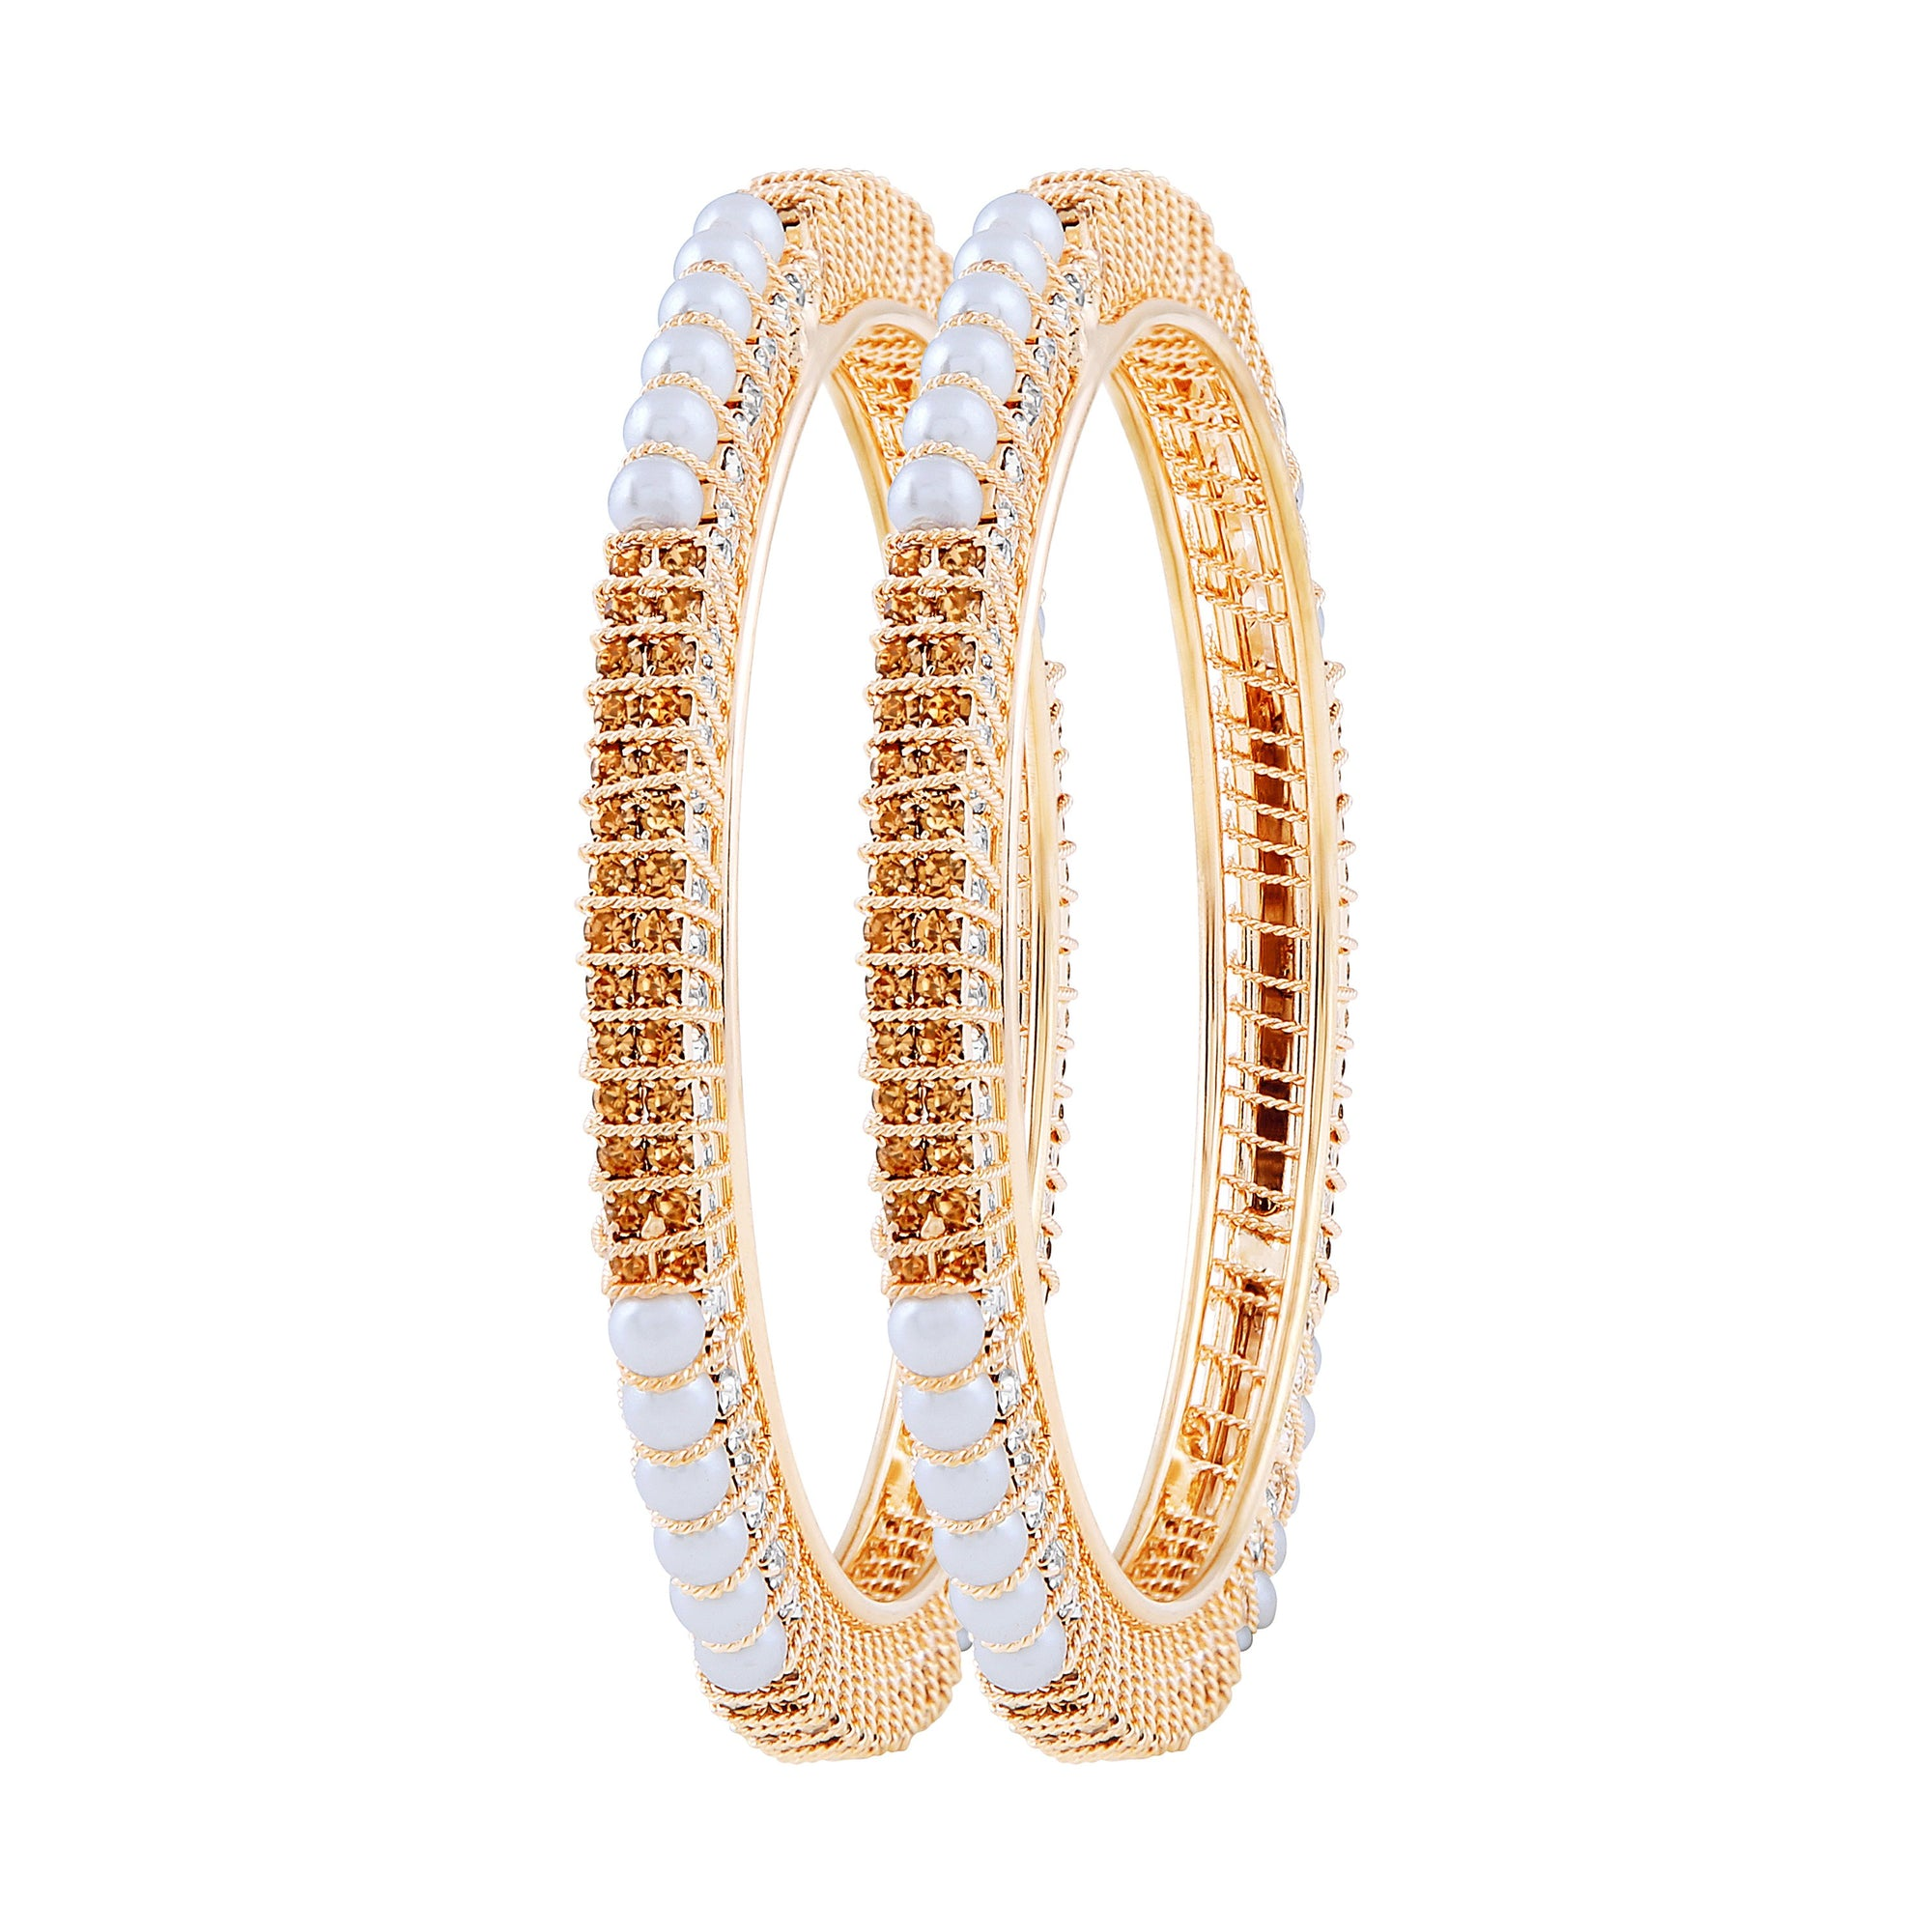 Asmitta Jewellery Gold  Bangle Set  -BG120